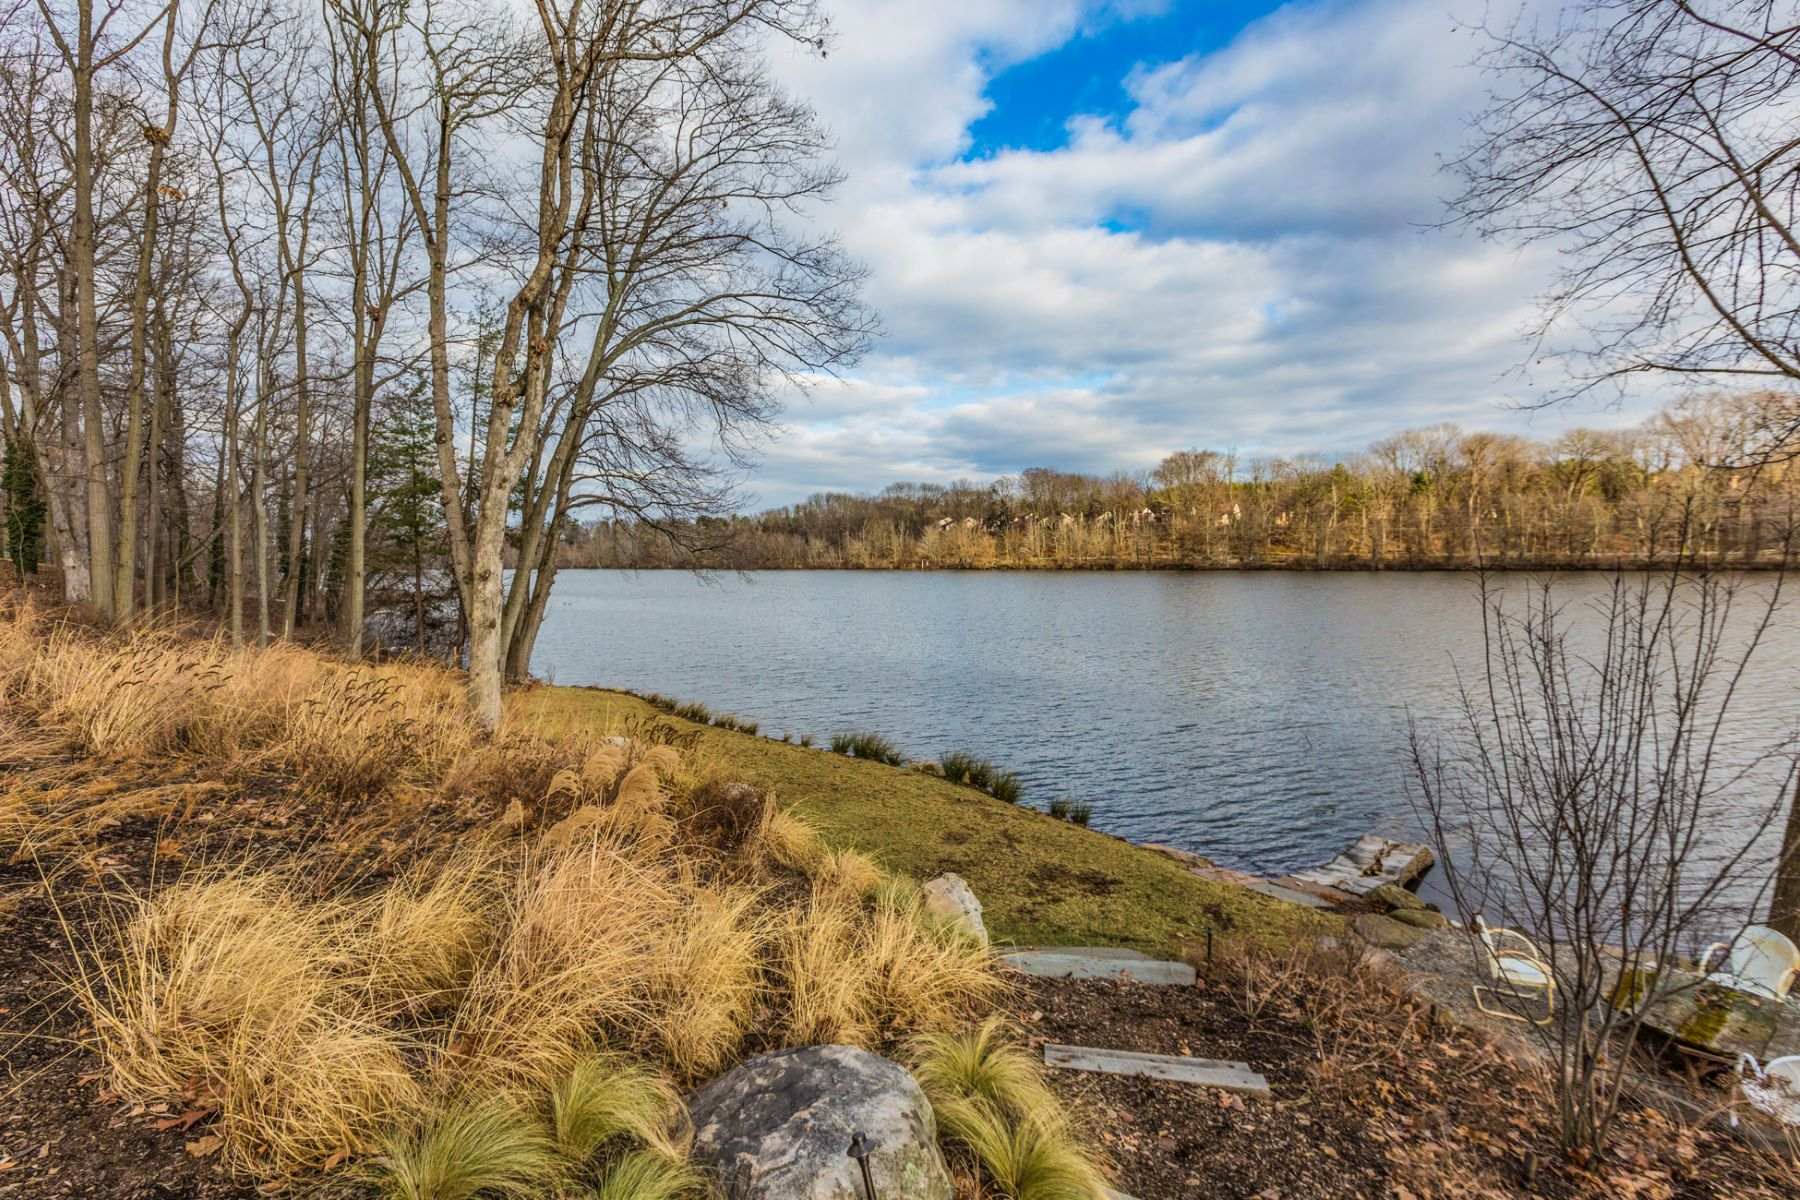 Land for Sale at Incredible Lakefront Lot Ready for Your Dream Home 369 Riverside Drive Princeton, New Jersey 08540 United States